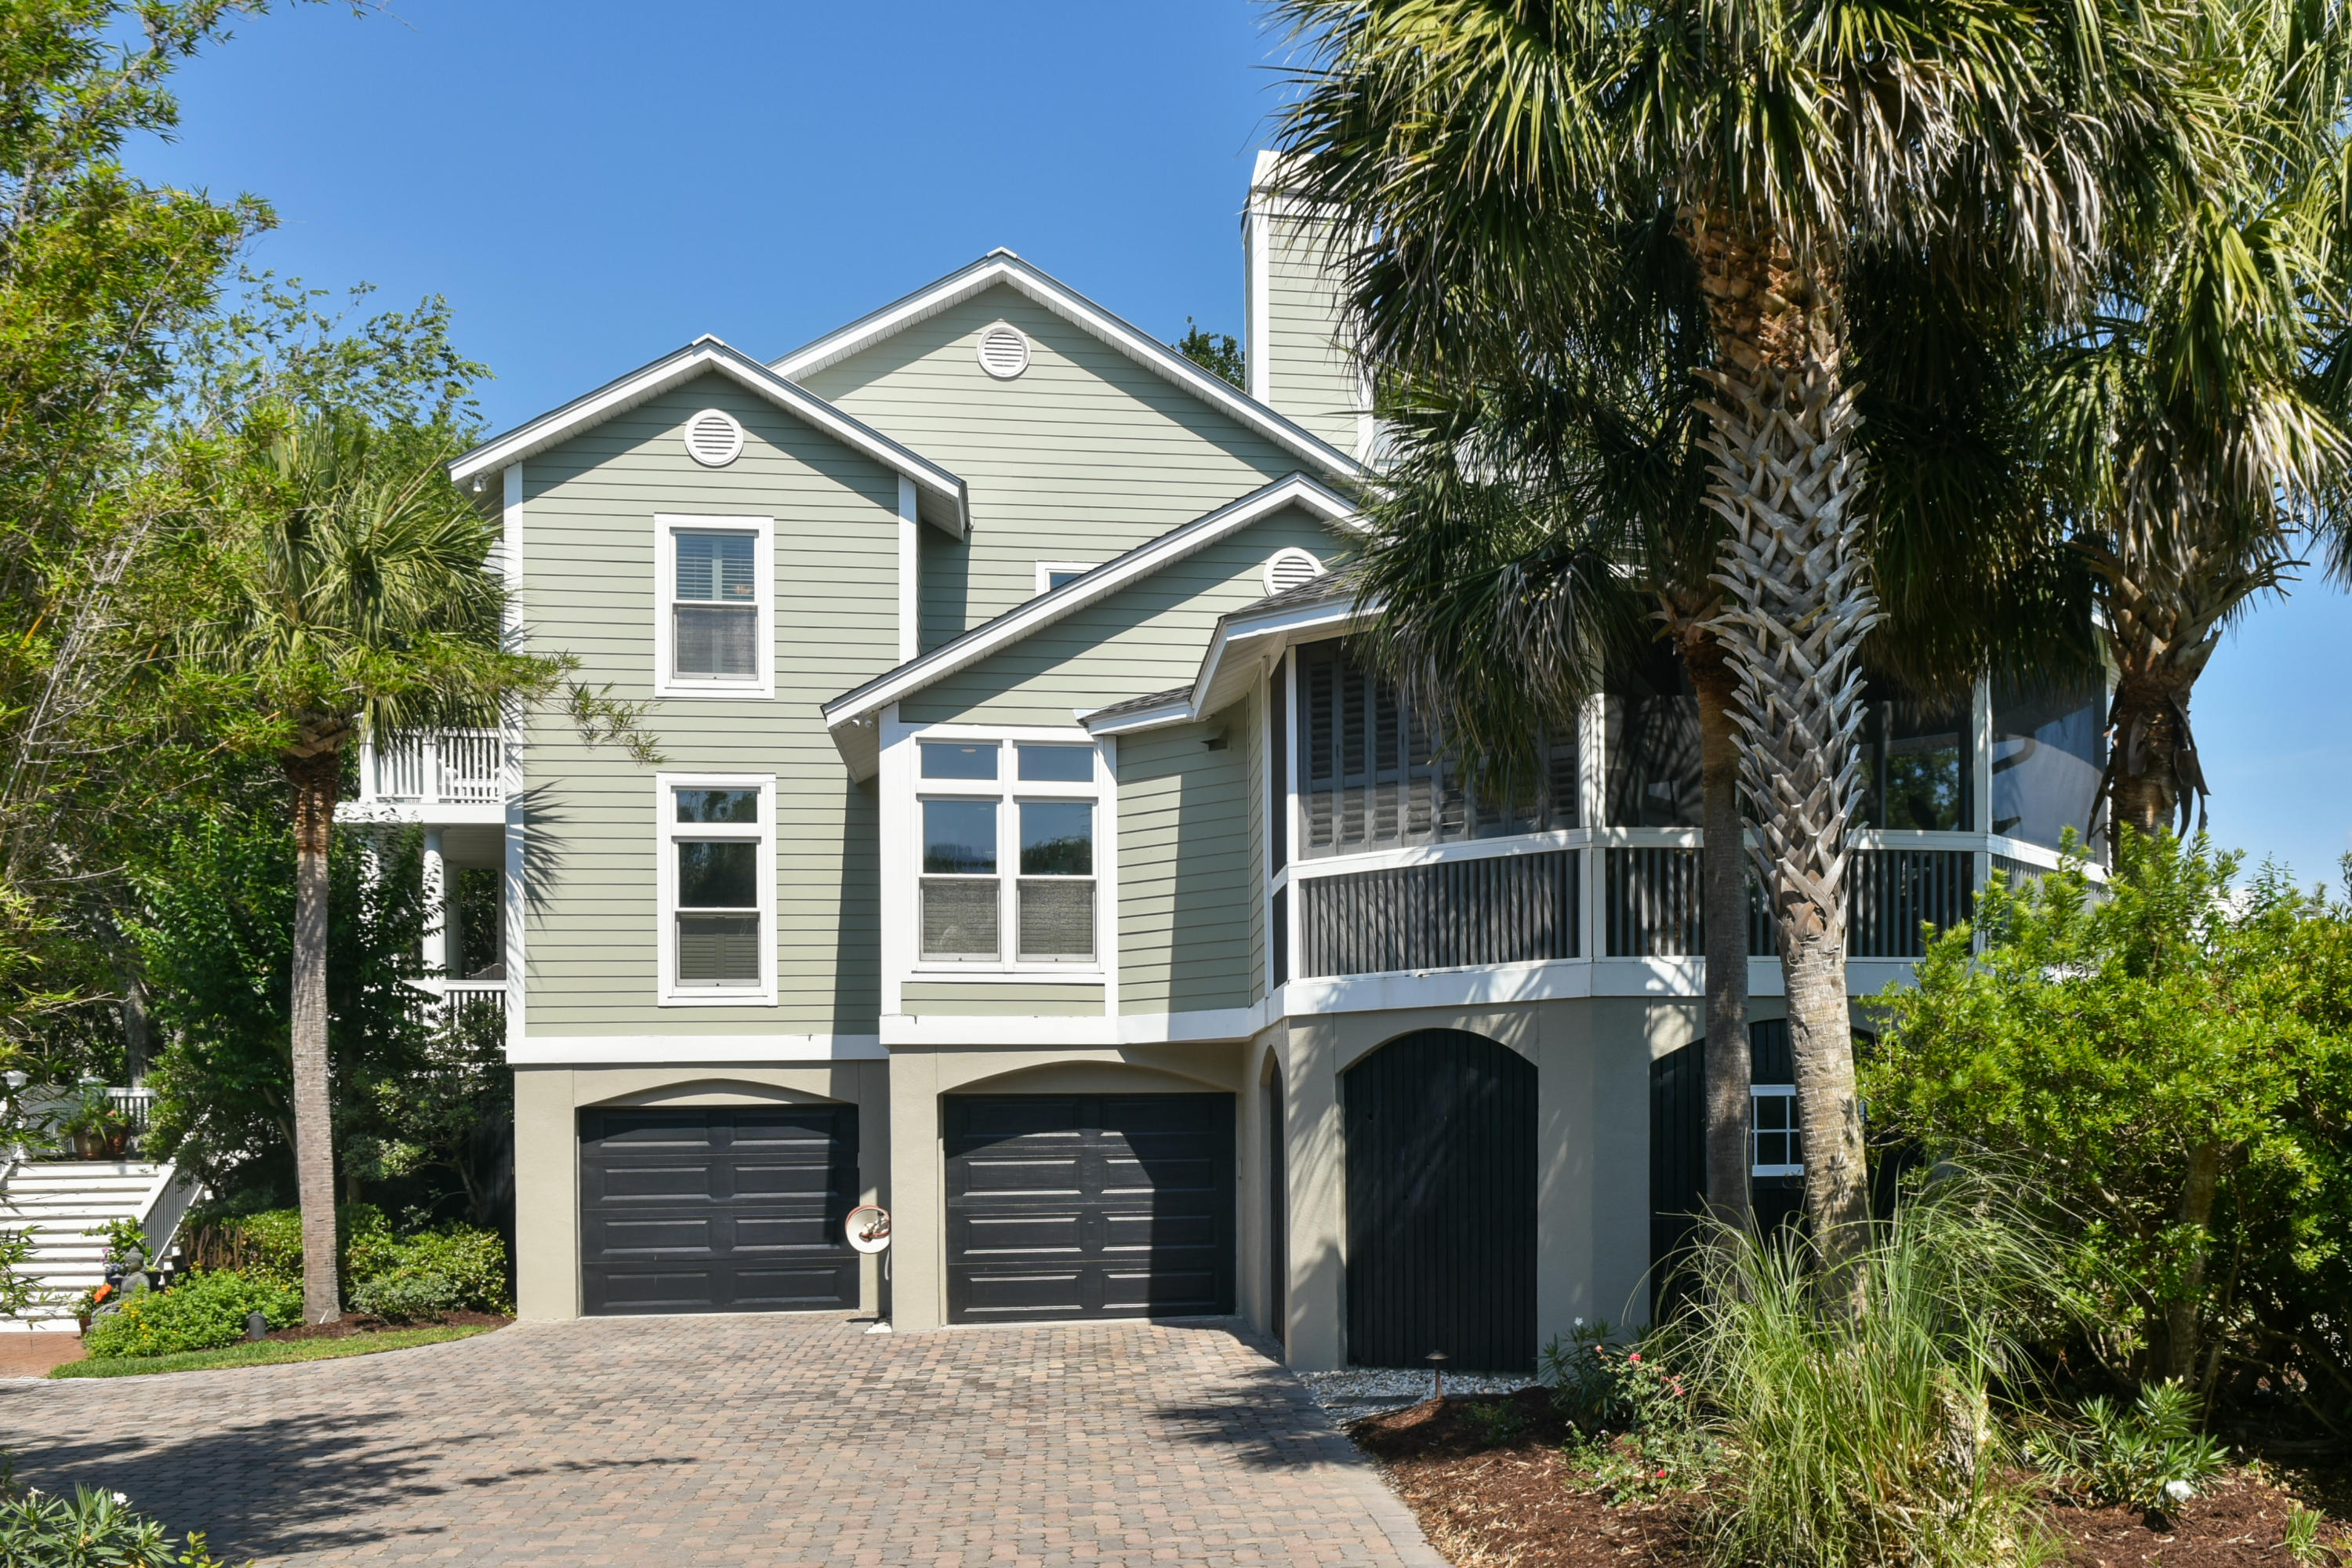 Sullivans Island Homes For Sale - 405 Station 12, Sullivans Island, SC - 34